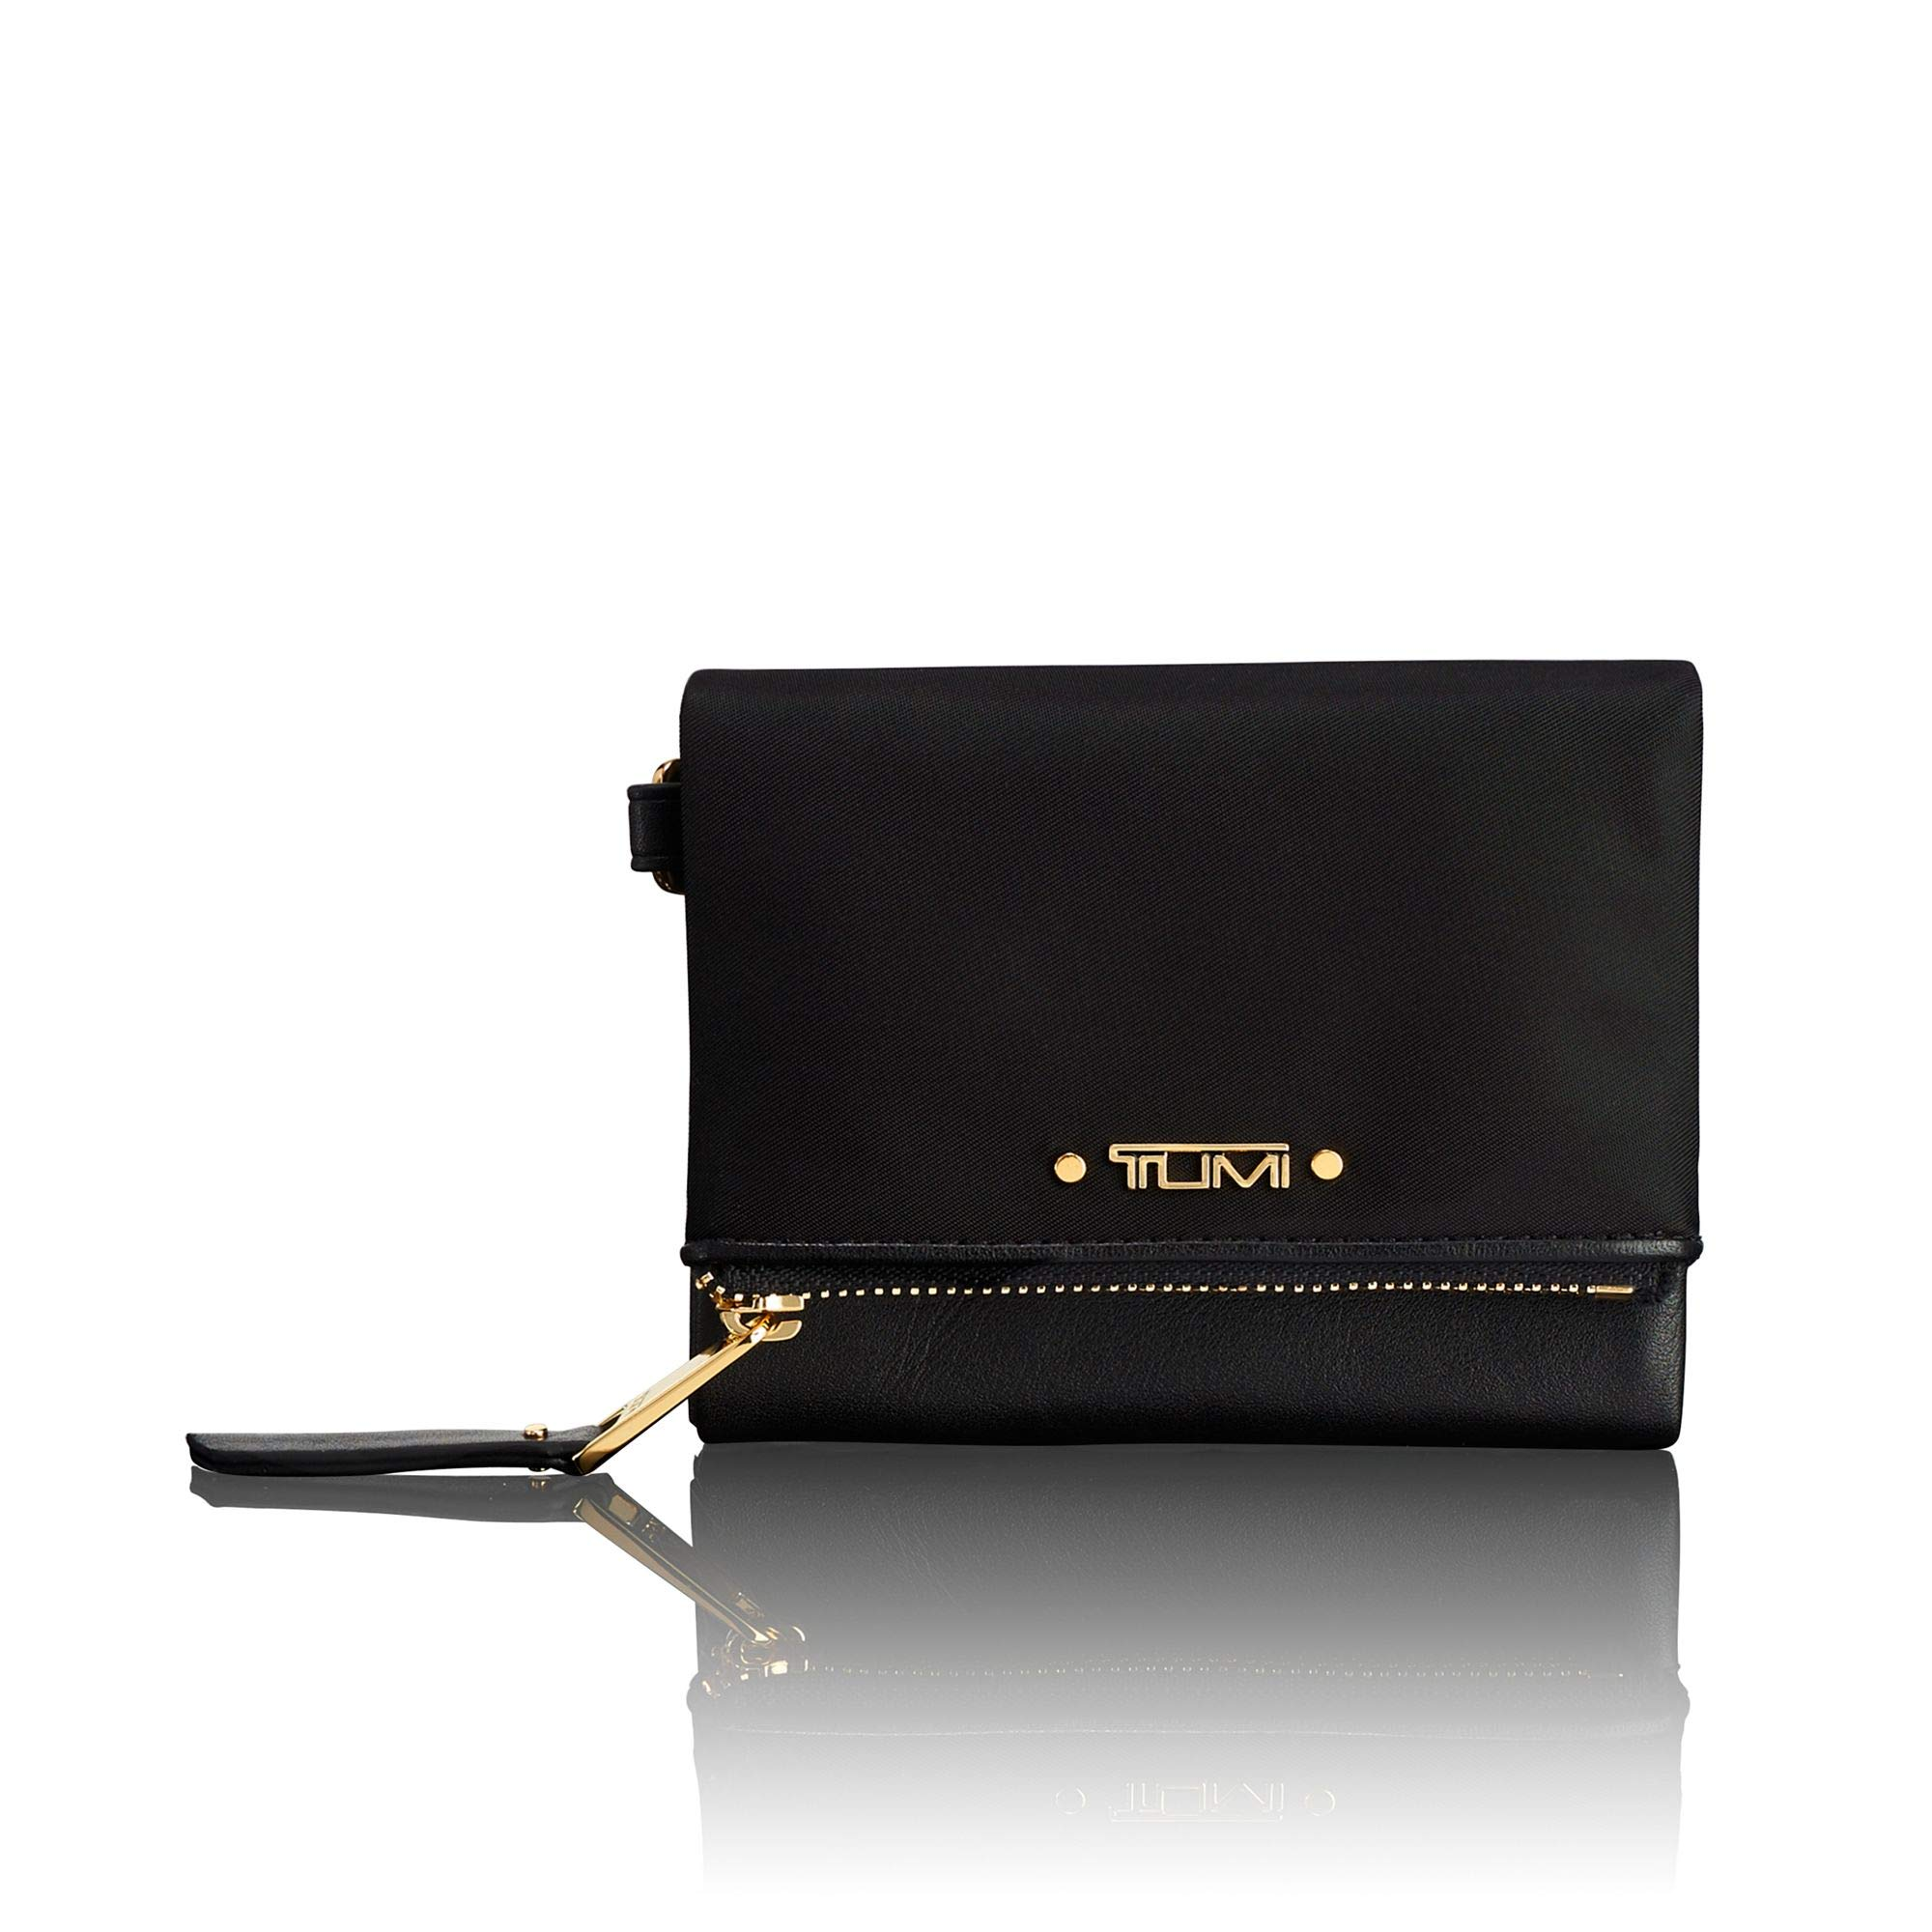 TUMI - Voyageur Flap Card Holder Case - Compact Wallet for Women - Black by TUMI